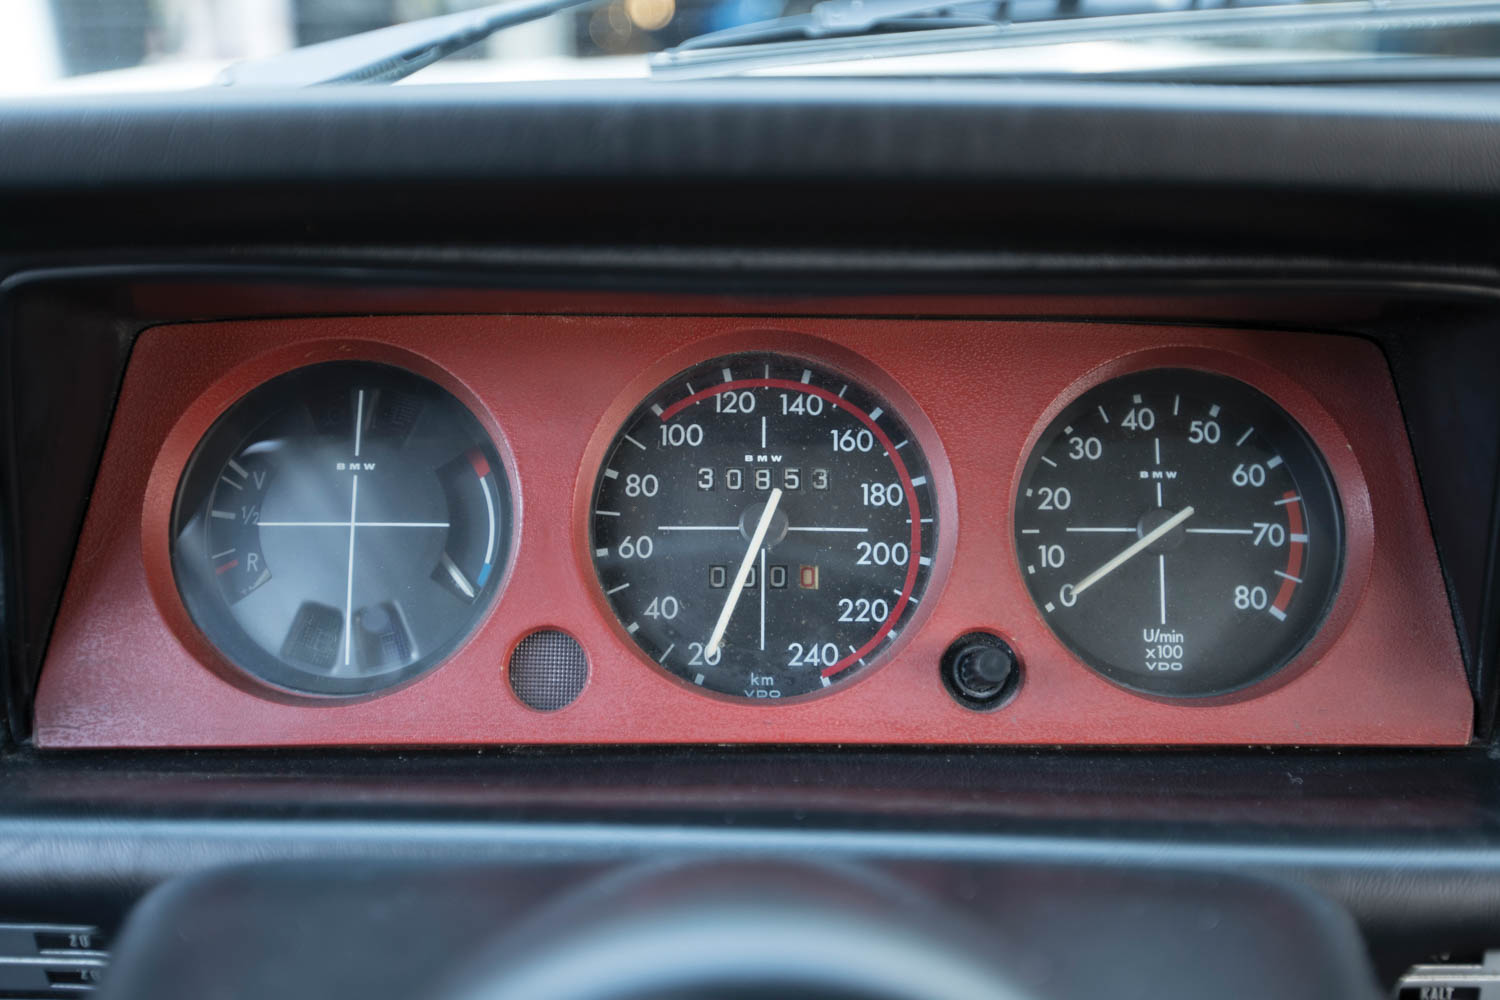 1974 BMW 2002 Turbo gauges